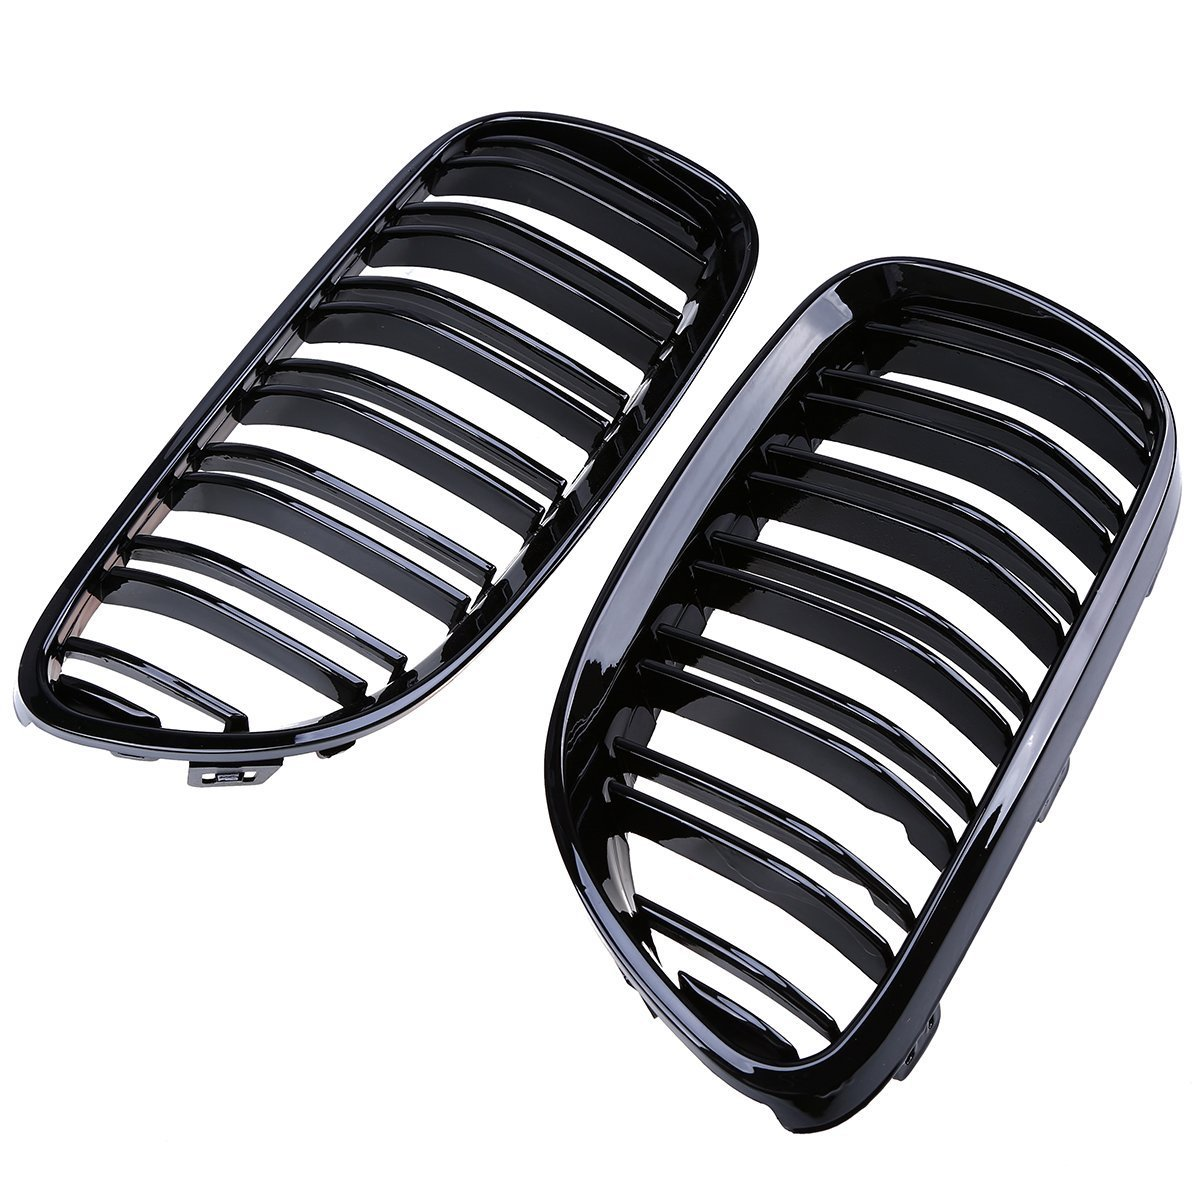 E92 E93 Front Grill Kidney Grille, Double-line Glossy Black, 2pcs POSSBAY